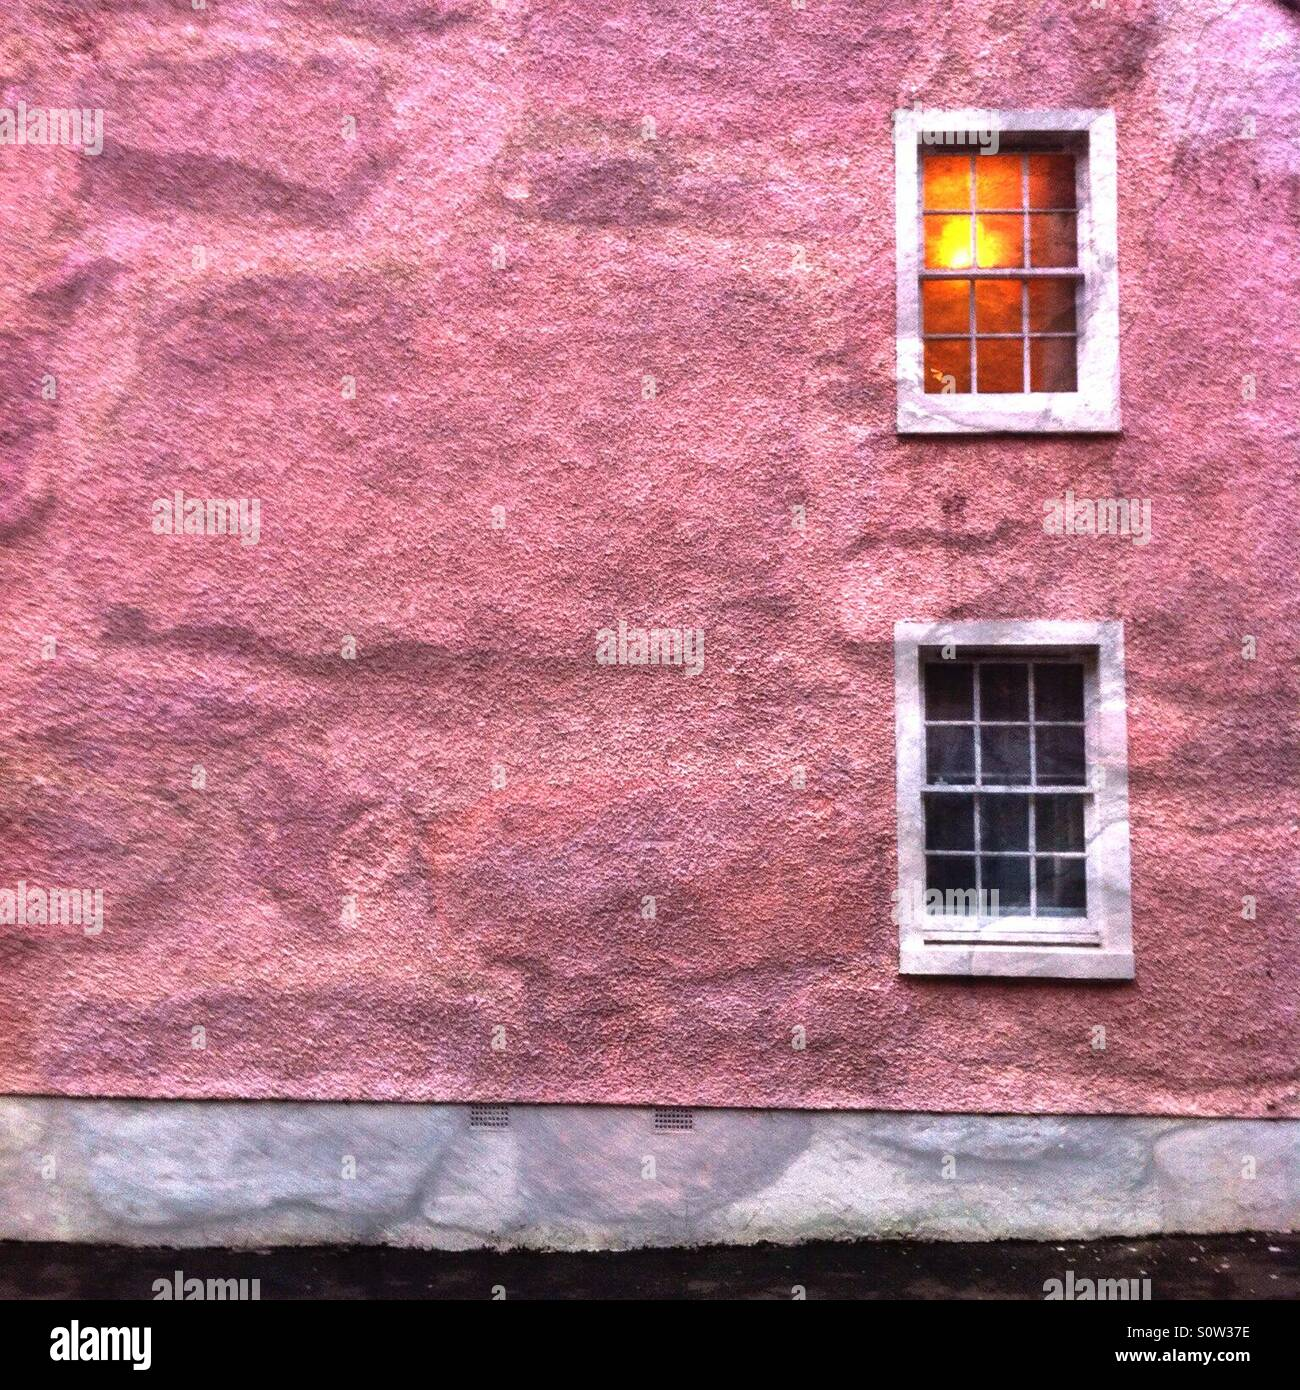 Pink wall with two windows superimposed onto a close up photograph of another wall using the Diana Photo App - Stock Image